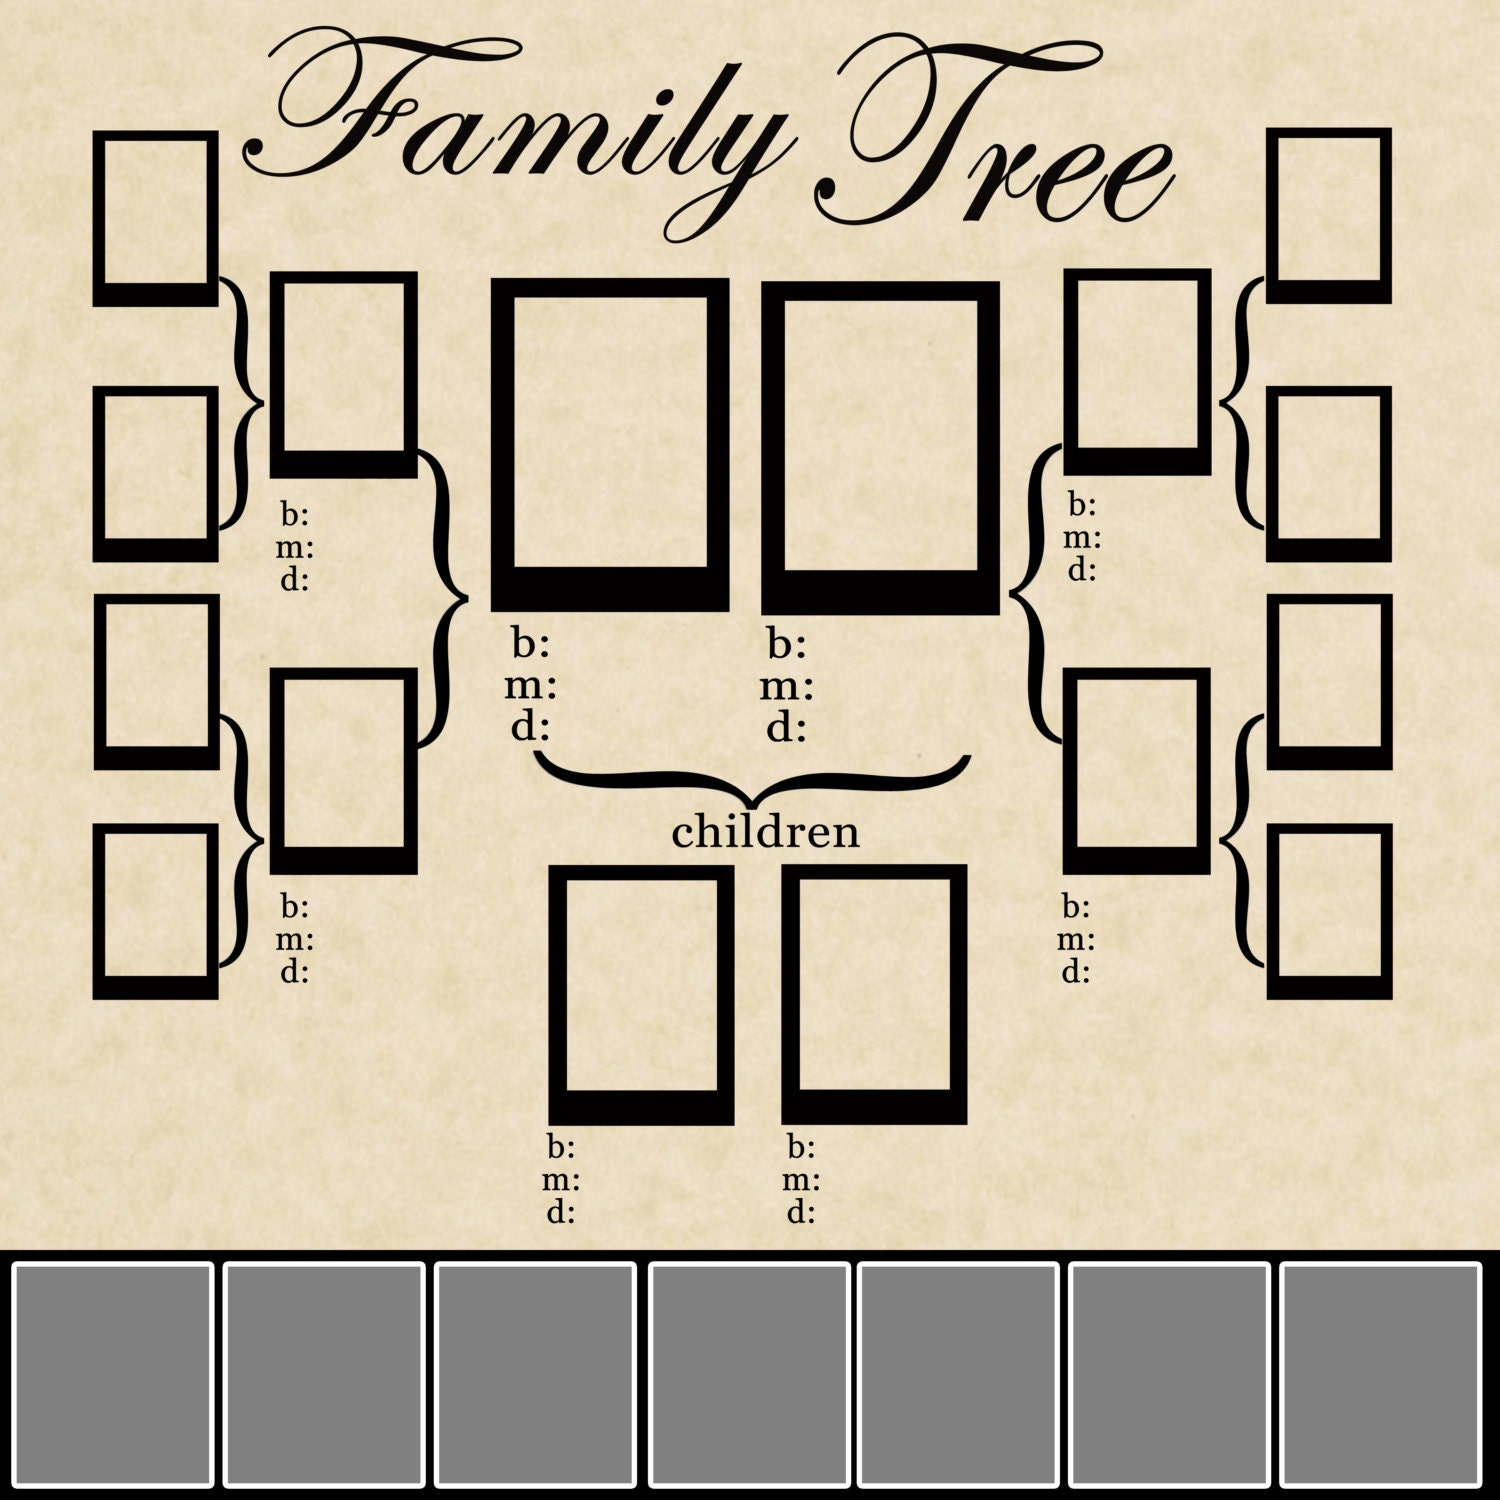 Family tree template family tree template psd for Genealogy templates for family trees